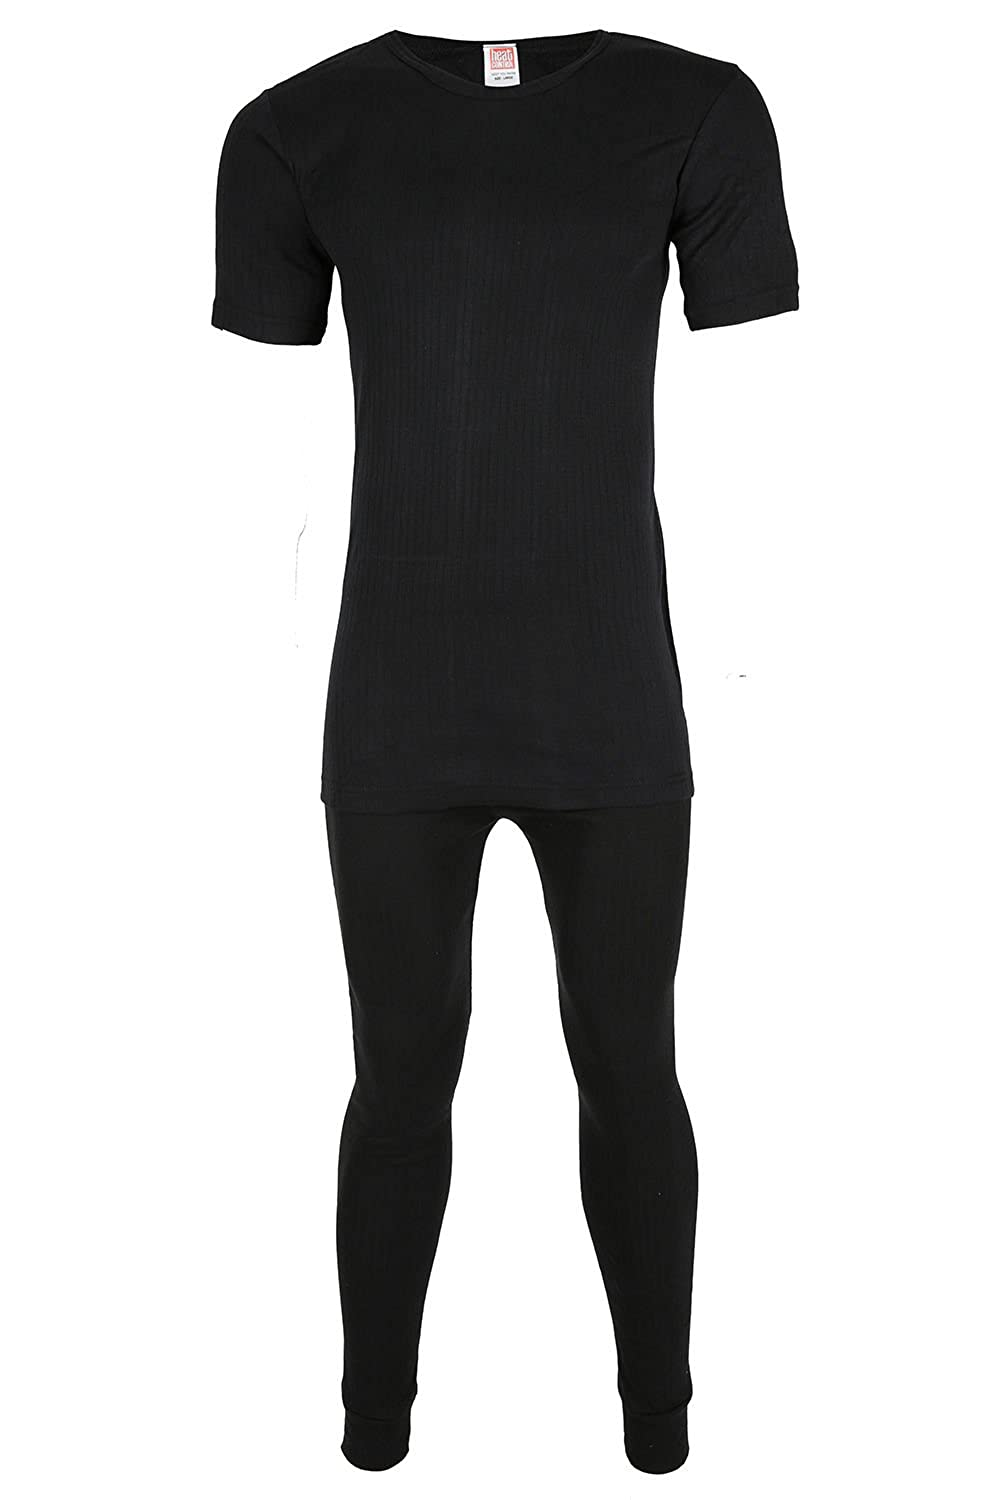 KidCo Mens Thermal Underwear Set Long Sleeve Vest /& Long John Baselayer